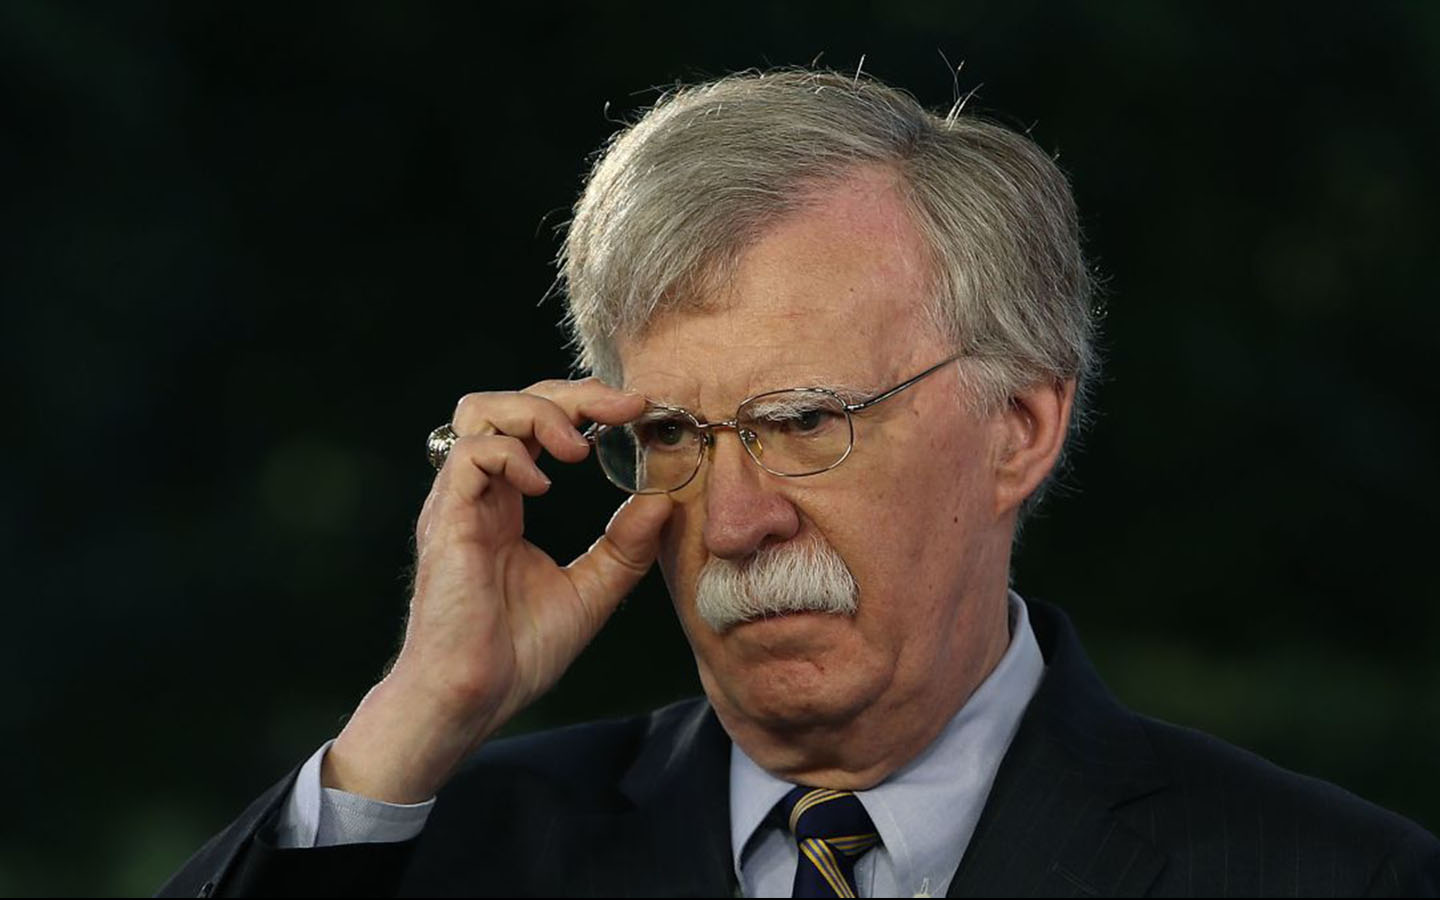 John Bolton Just Stabbed His Dem Buddies in the Back Again With This Election Announcement